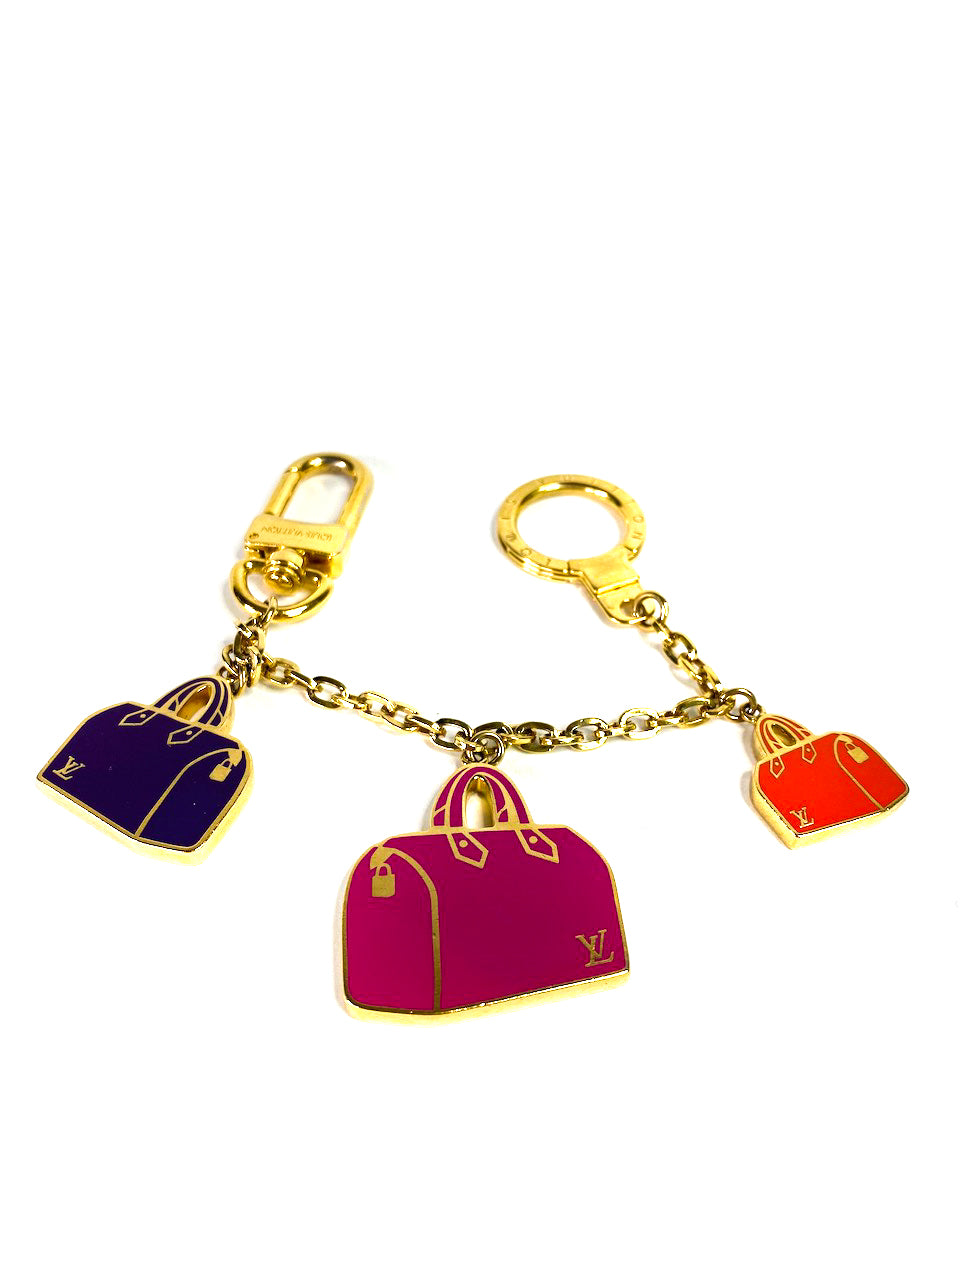 Louis Vuitton Multi Bag Charm - As Seen on Instagram - Siopaella Designer Exchange